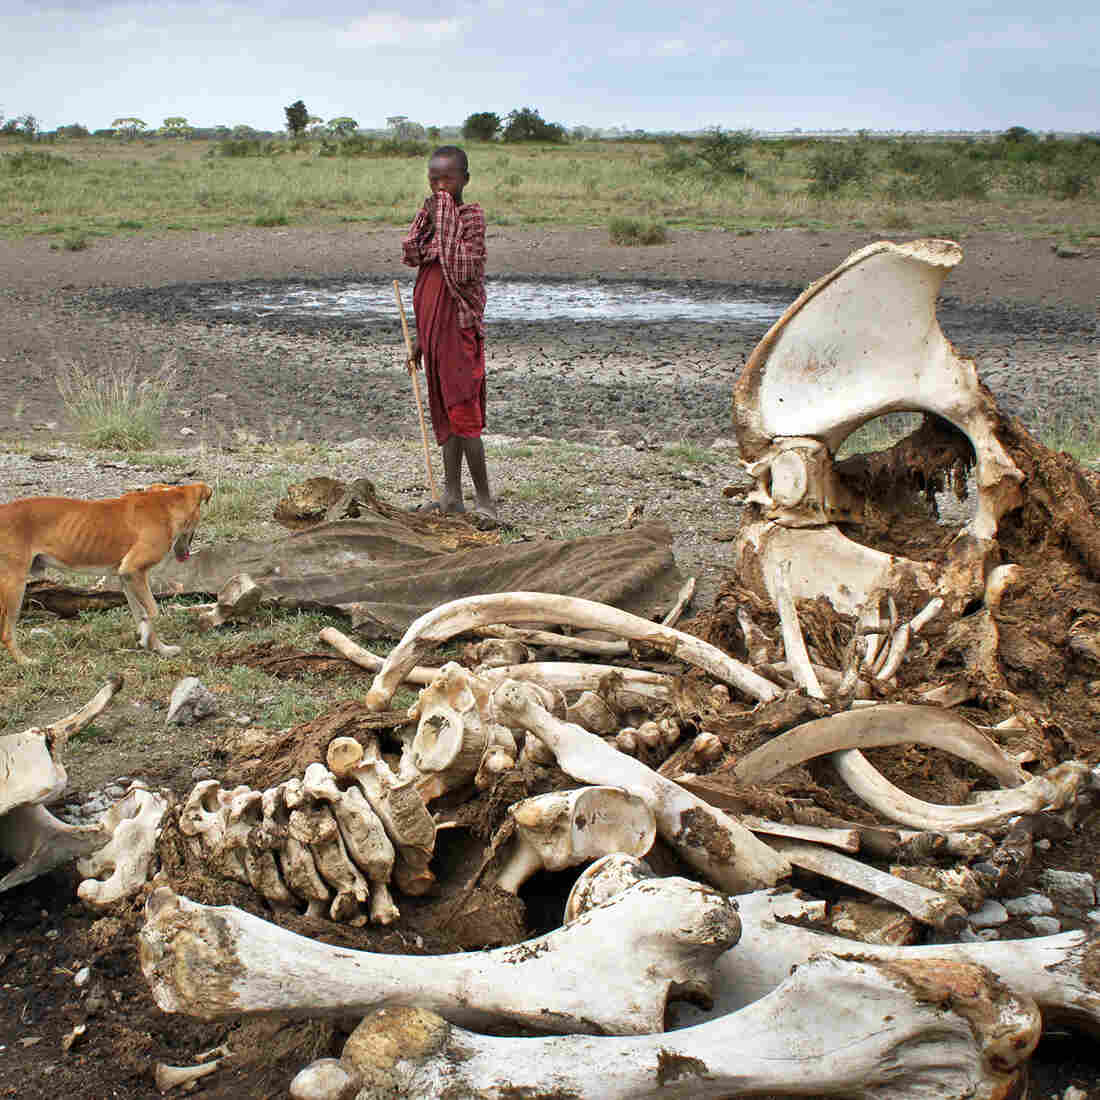 DNA Tracking Of Ivory Helps Biologists Find Poaching Hotspots